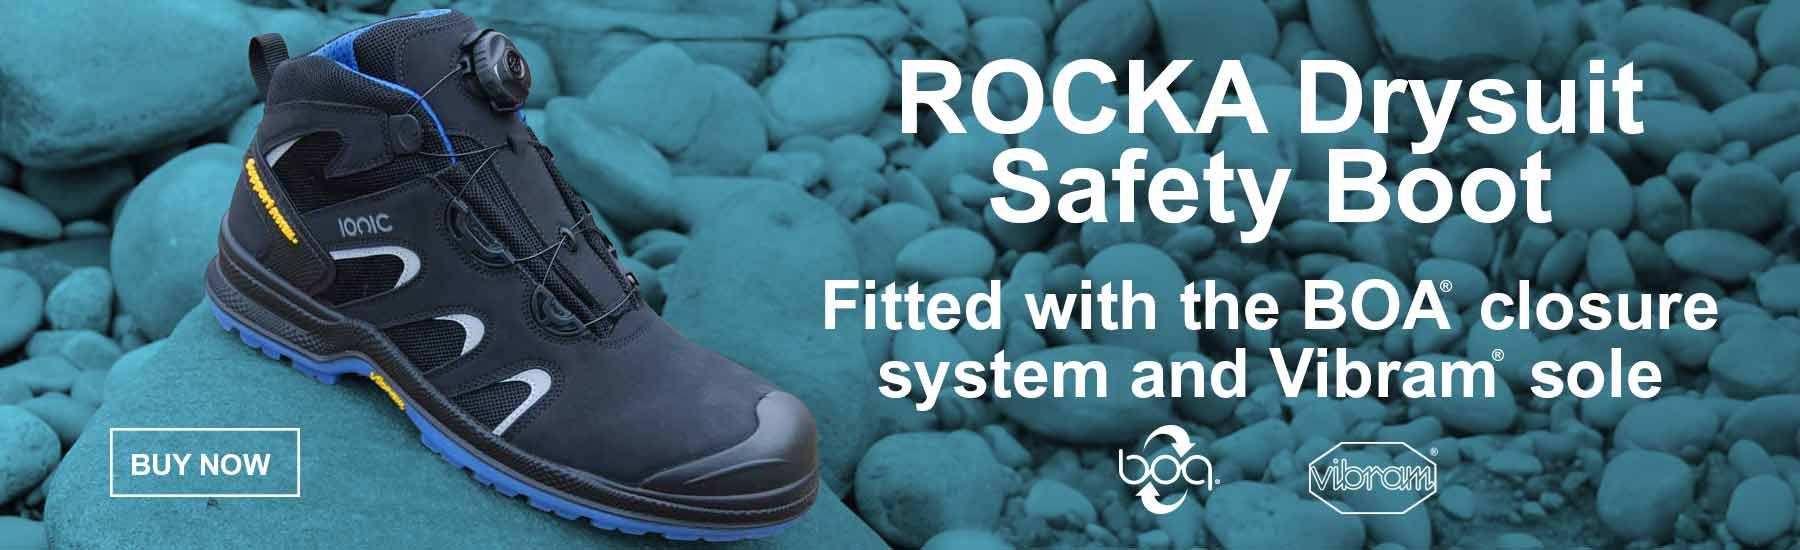 Ionic Rocka drysuit safety boot by safequip